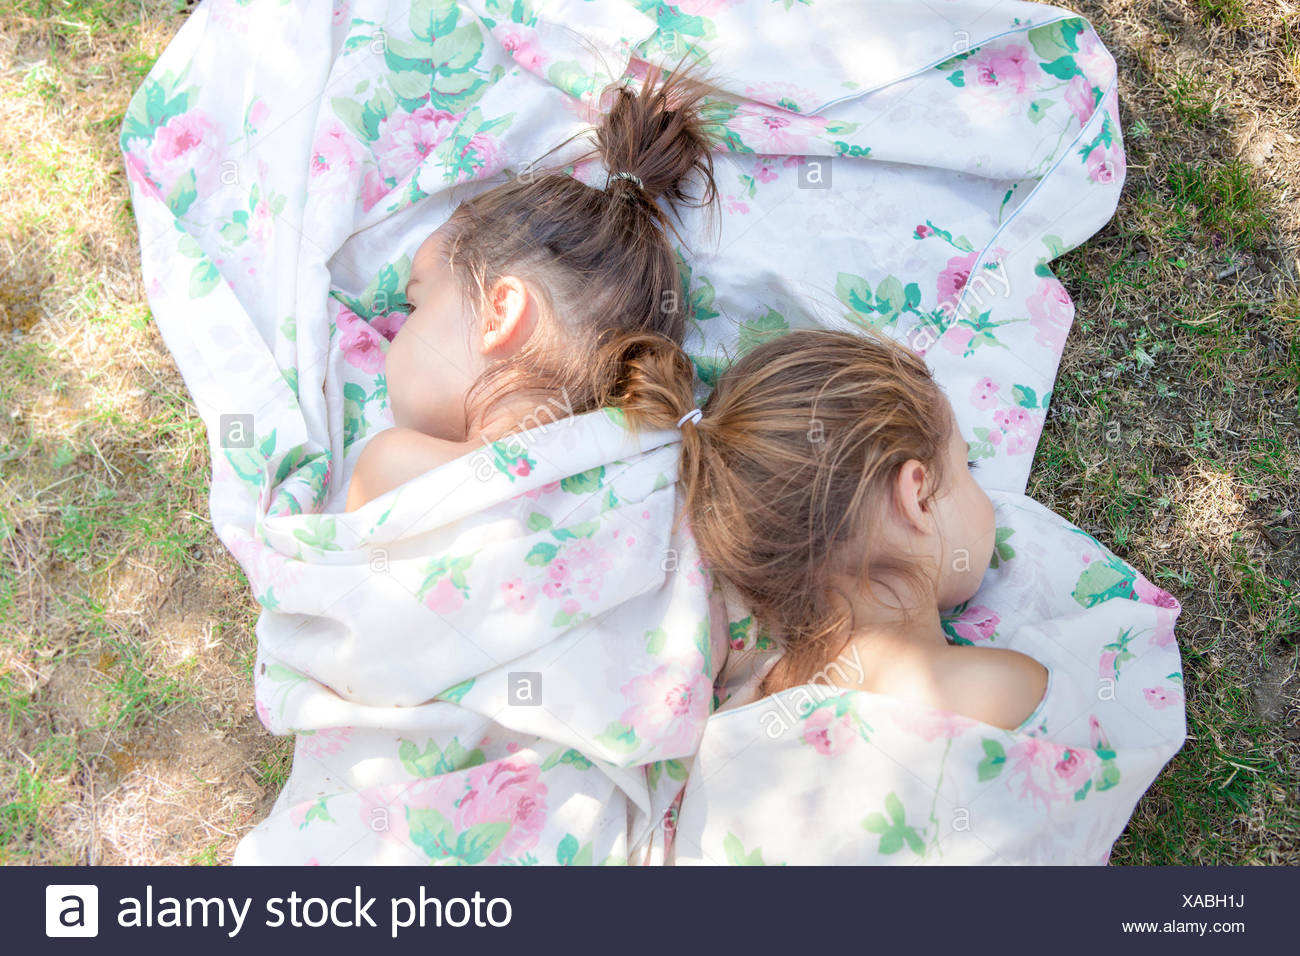 Twin girls napping in floral sheet on grass - Stock Image